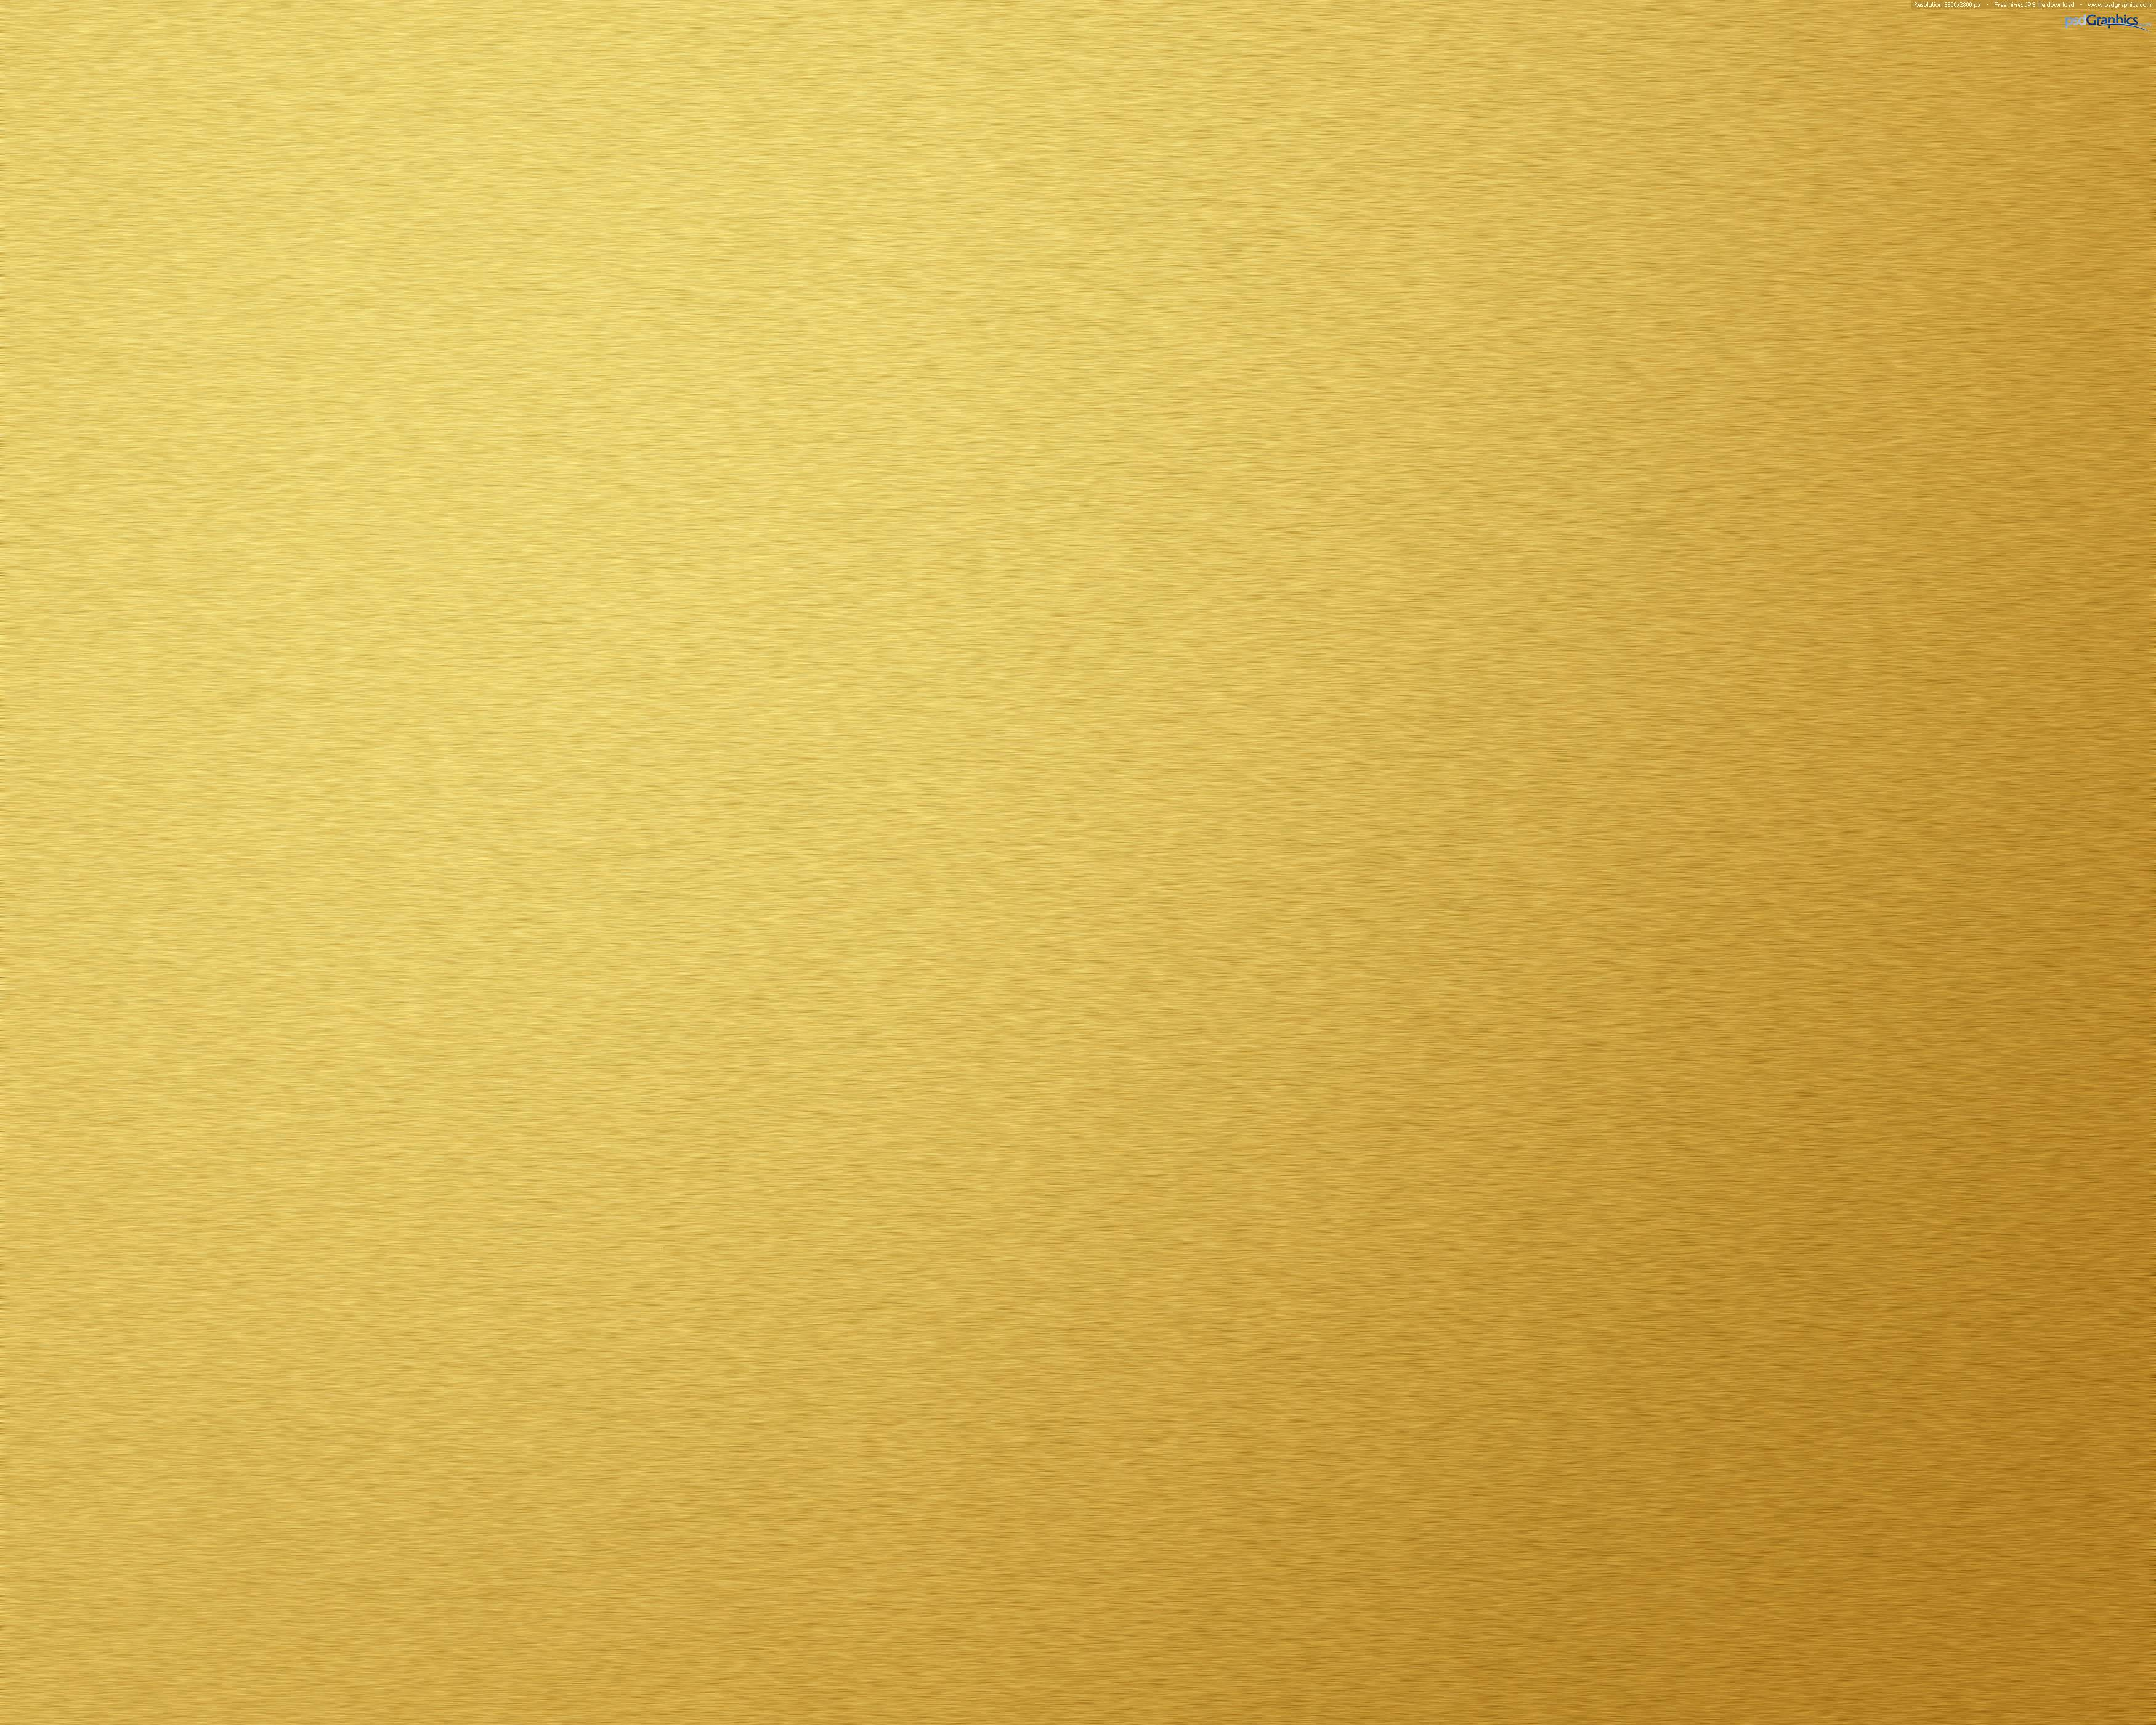 Gold Backgrounds 3500x2800